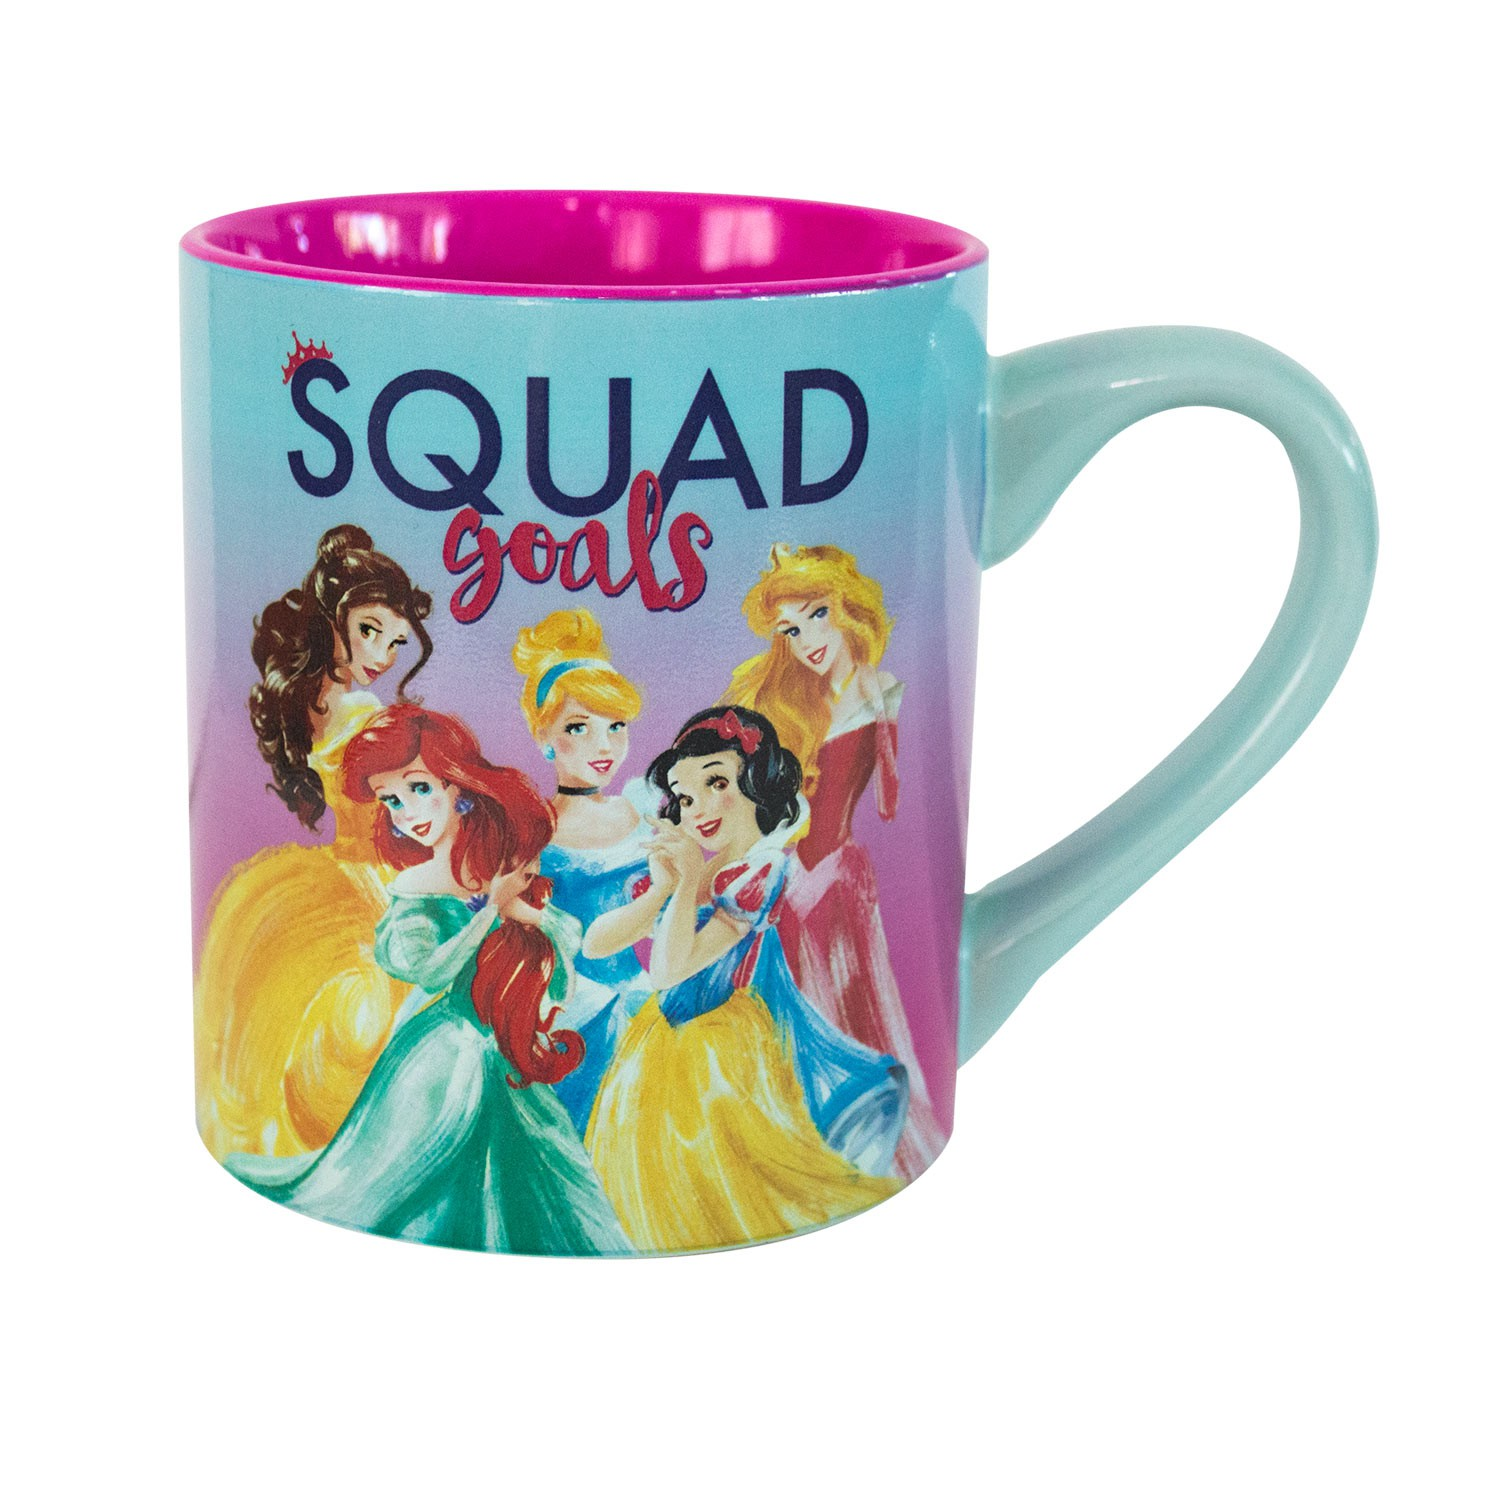 Squad Goals Mug Princesses Disney Ceramic Coffee kZXPiu